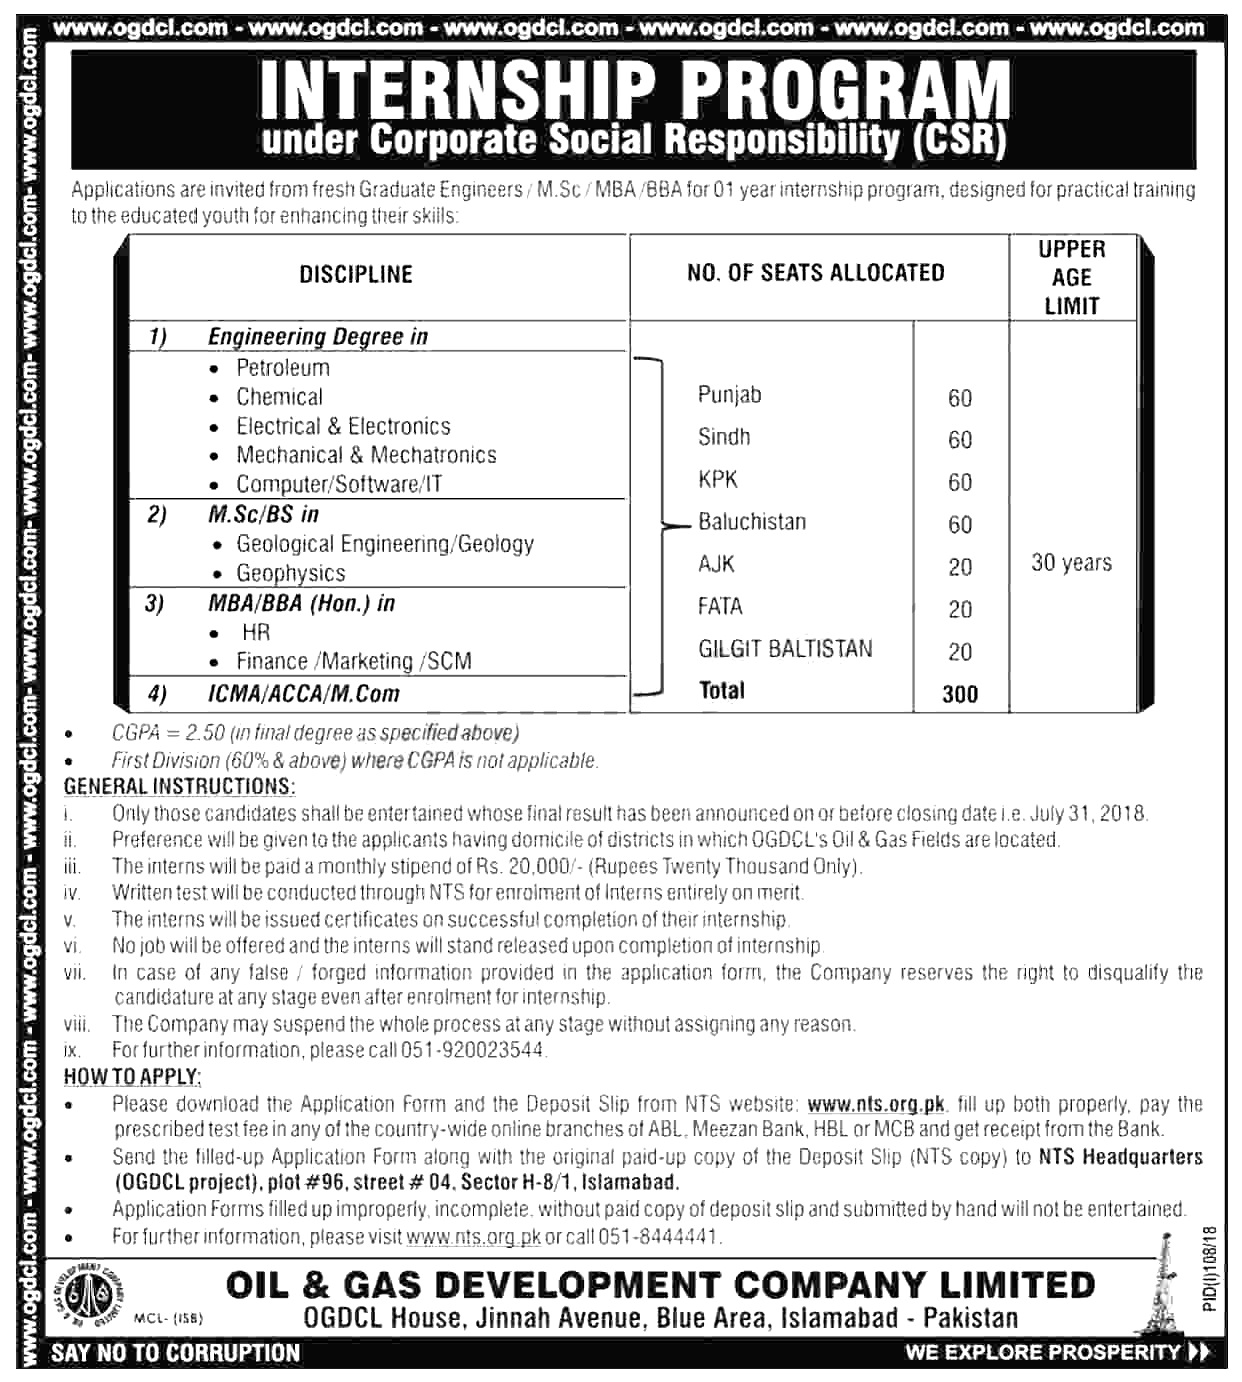 NTS OGDCL Internship Program 2018 Application Form Download Online Roll No slips check